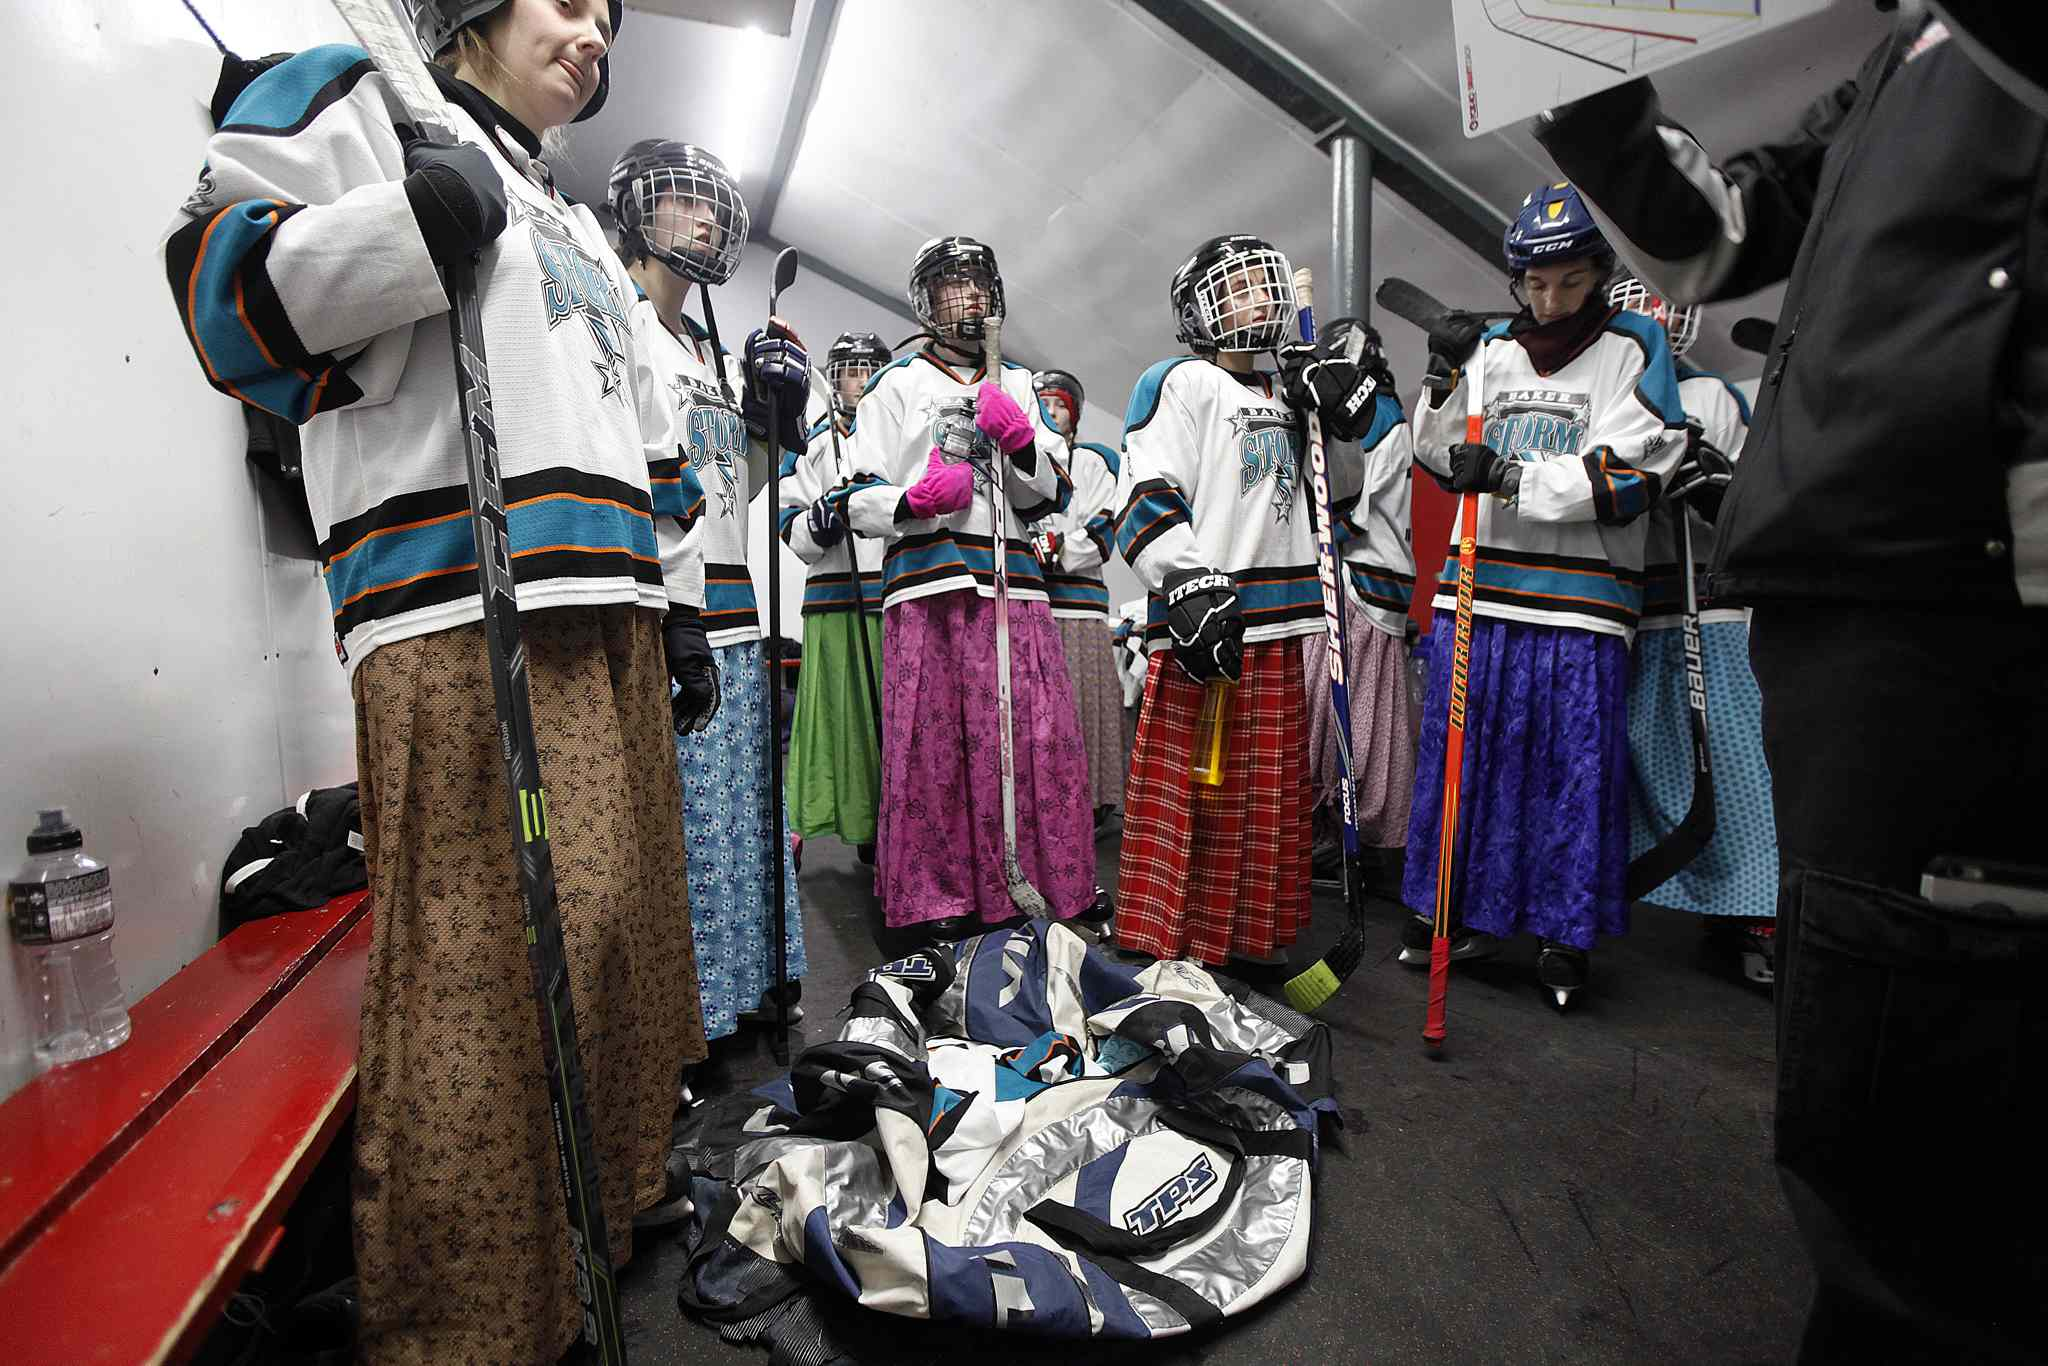 Members of the Baker Storm listen to a little guidance between periods. (Phil Hossack / Winnipeg Free Press)